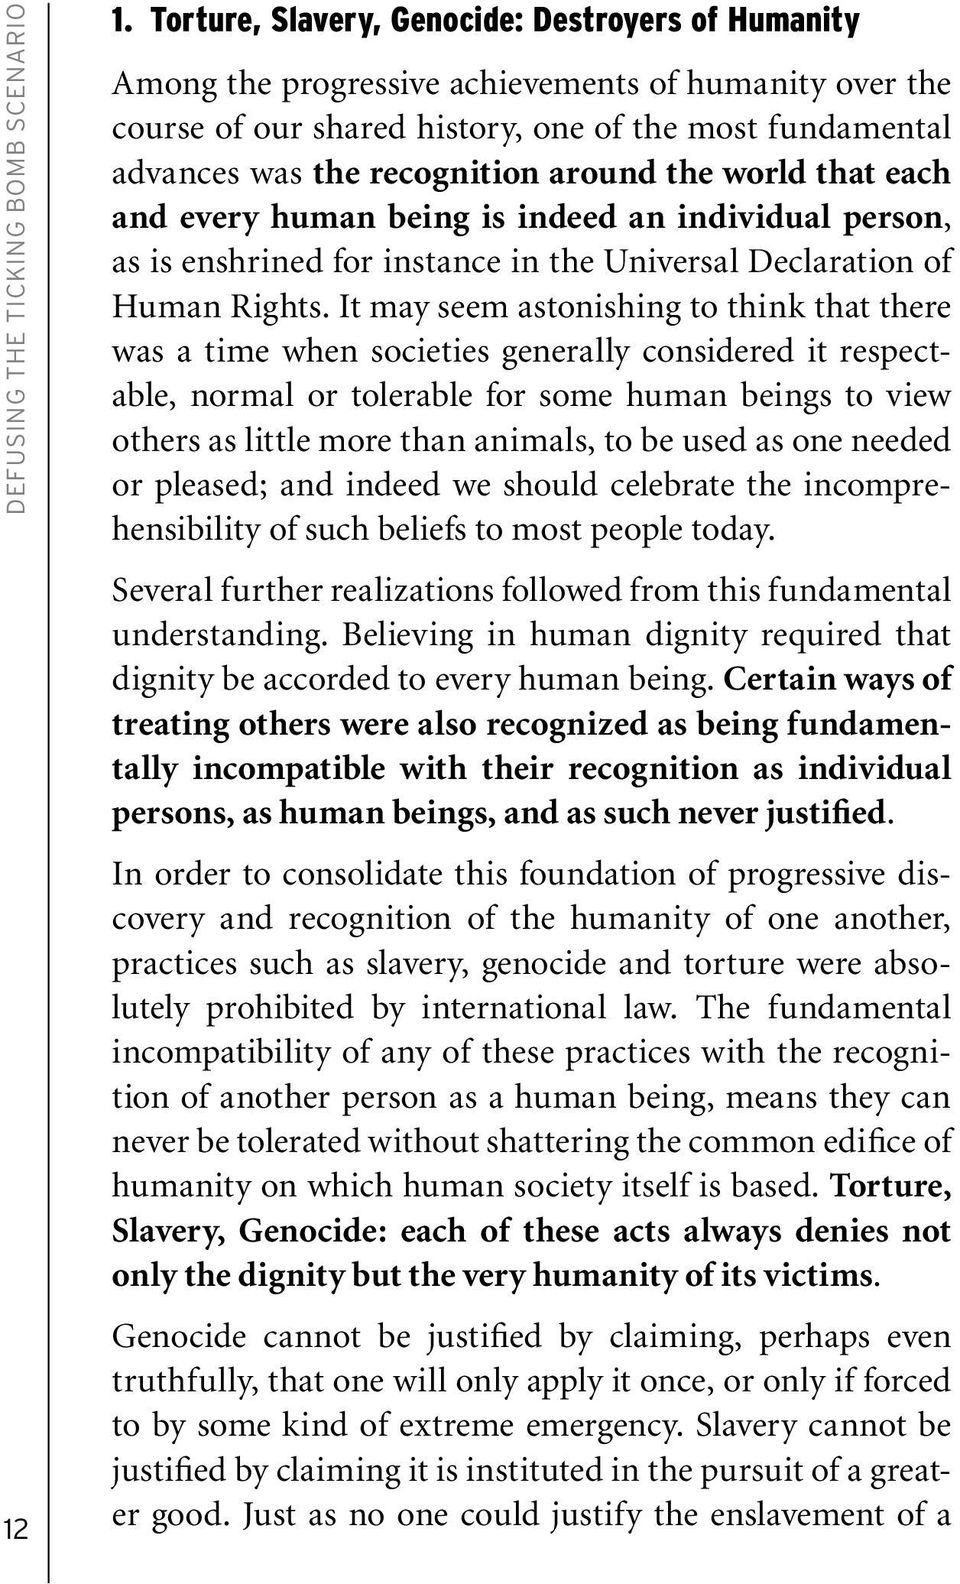 around the world that each and every human being is indeed an individual person, as is enshrined for instance in the Universal Declaration of Human Rights.